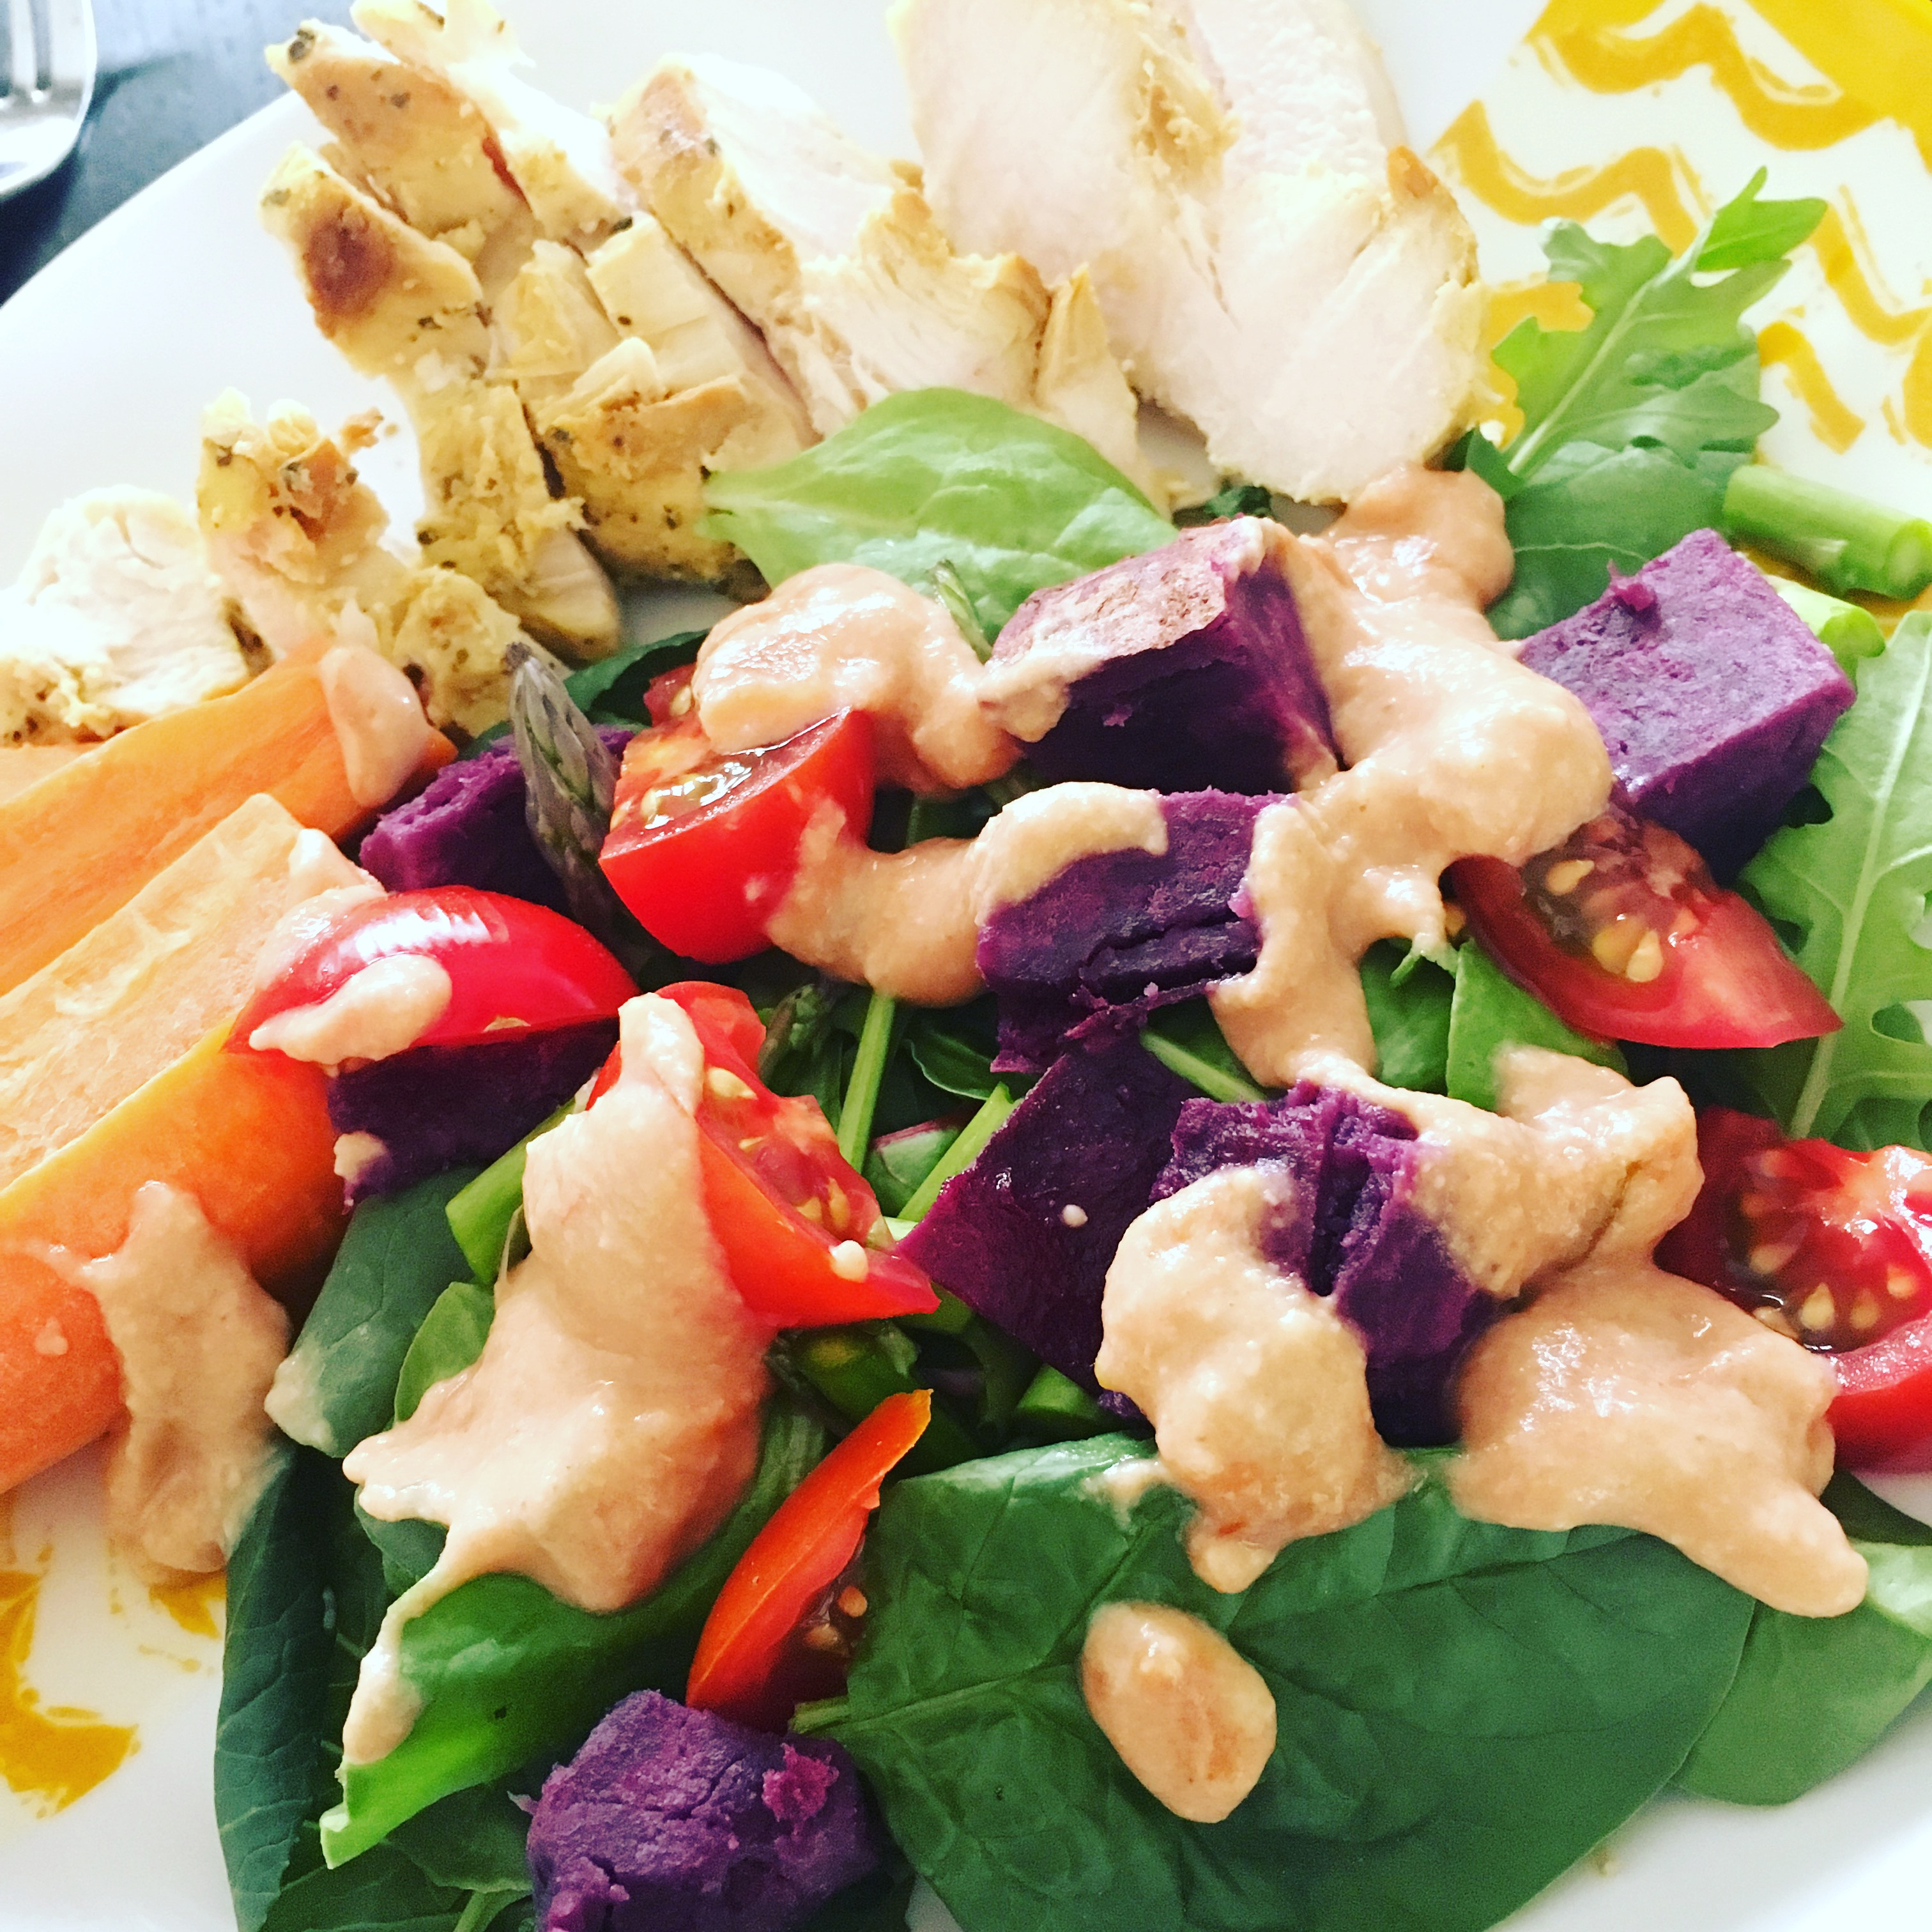 Salad with hummus salsa dressing